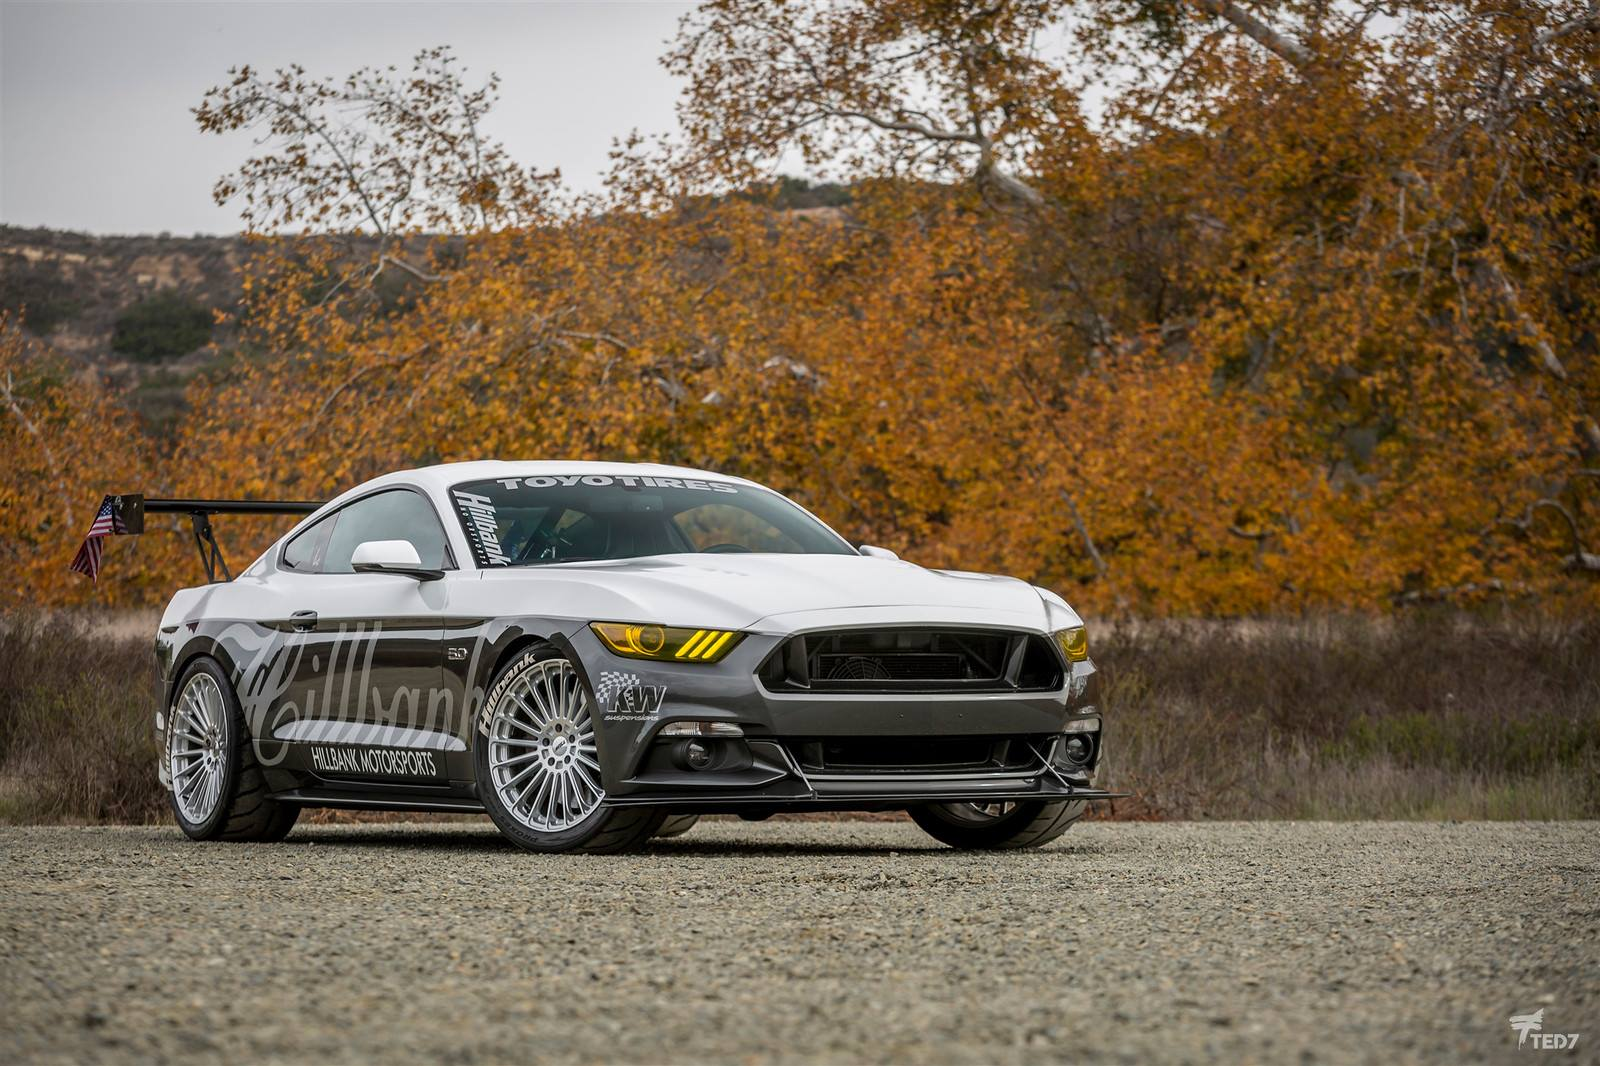 Ford Mustang on TSW Turbina